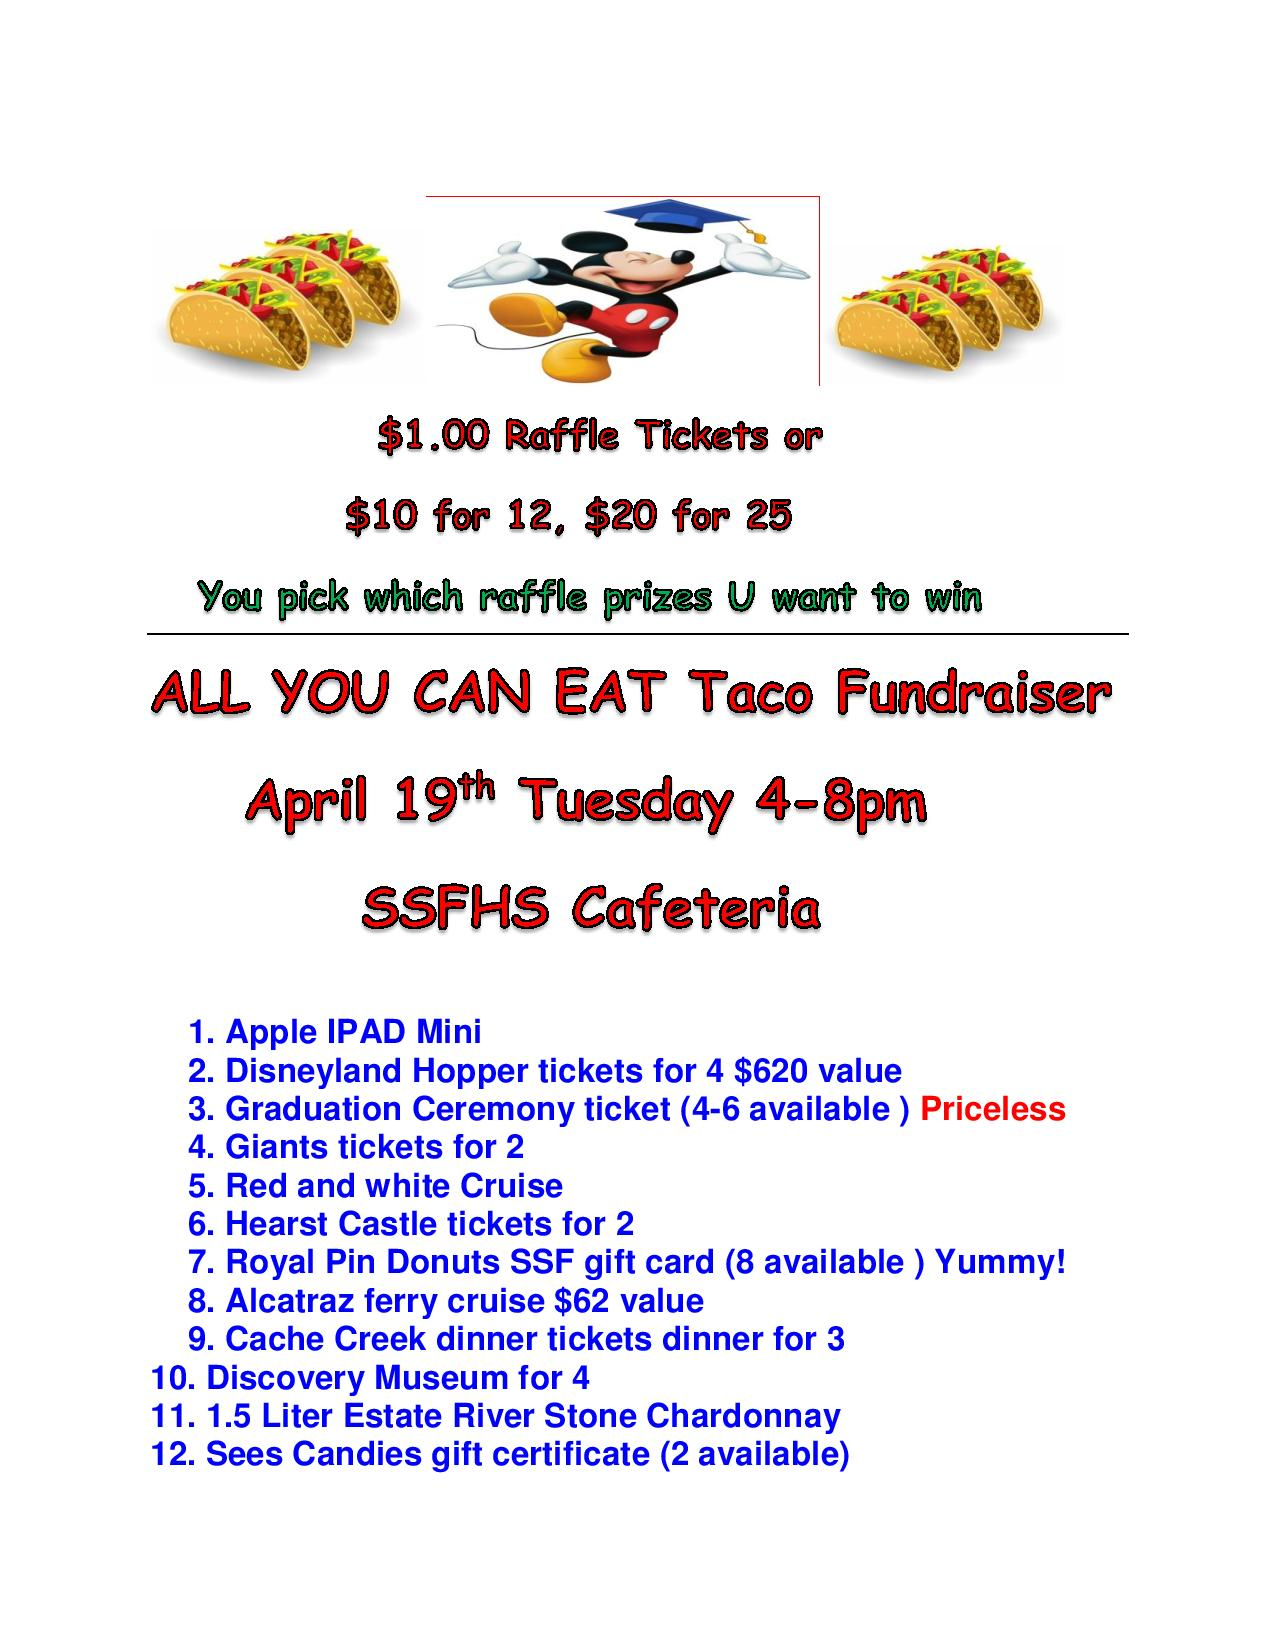 taco all u can eat raffle ticket items list april 19 2016 revised!!!!!!!#-page-001